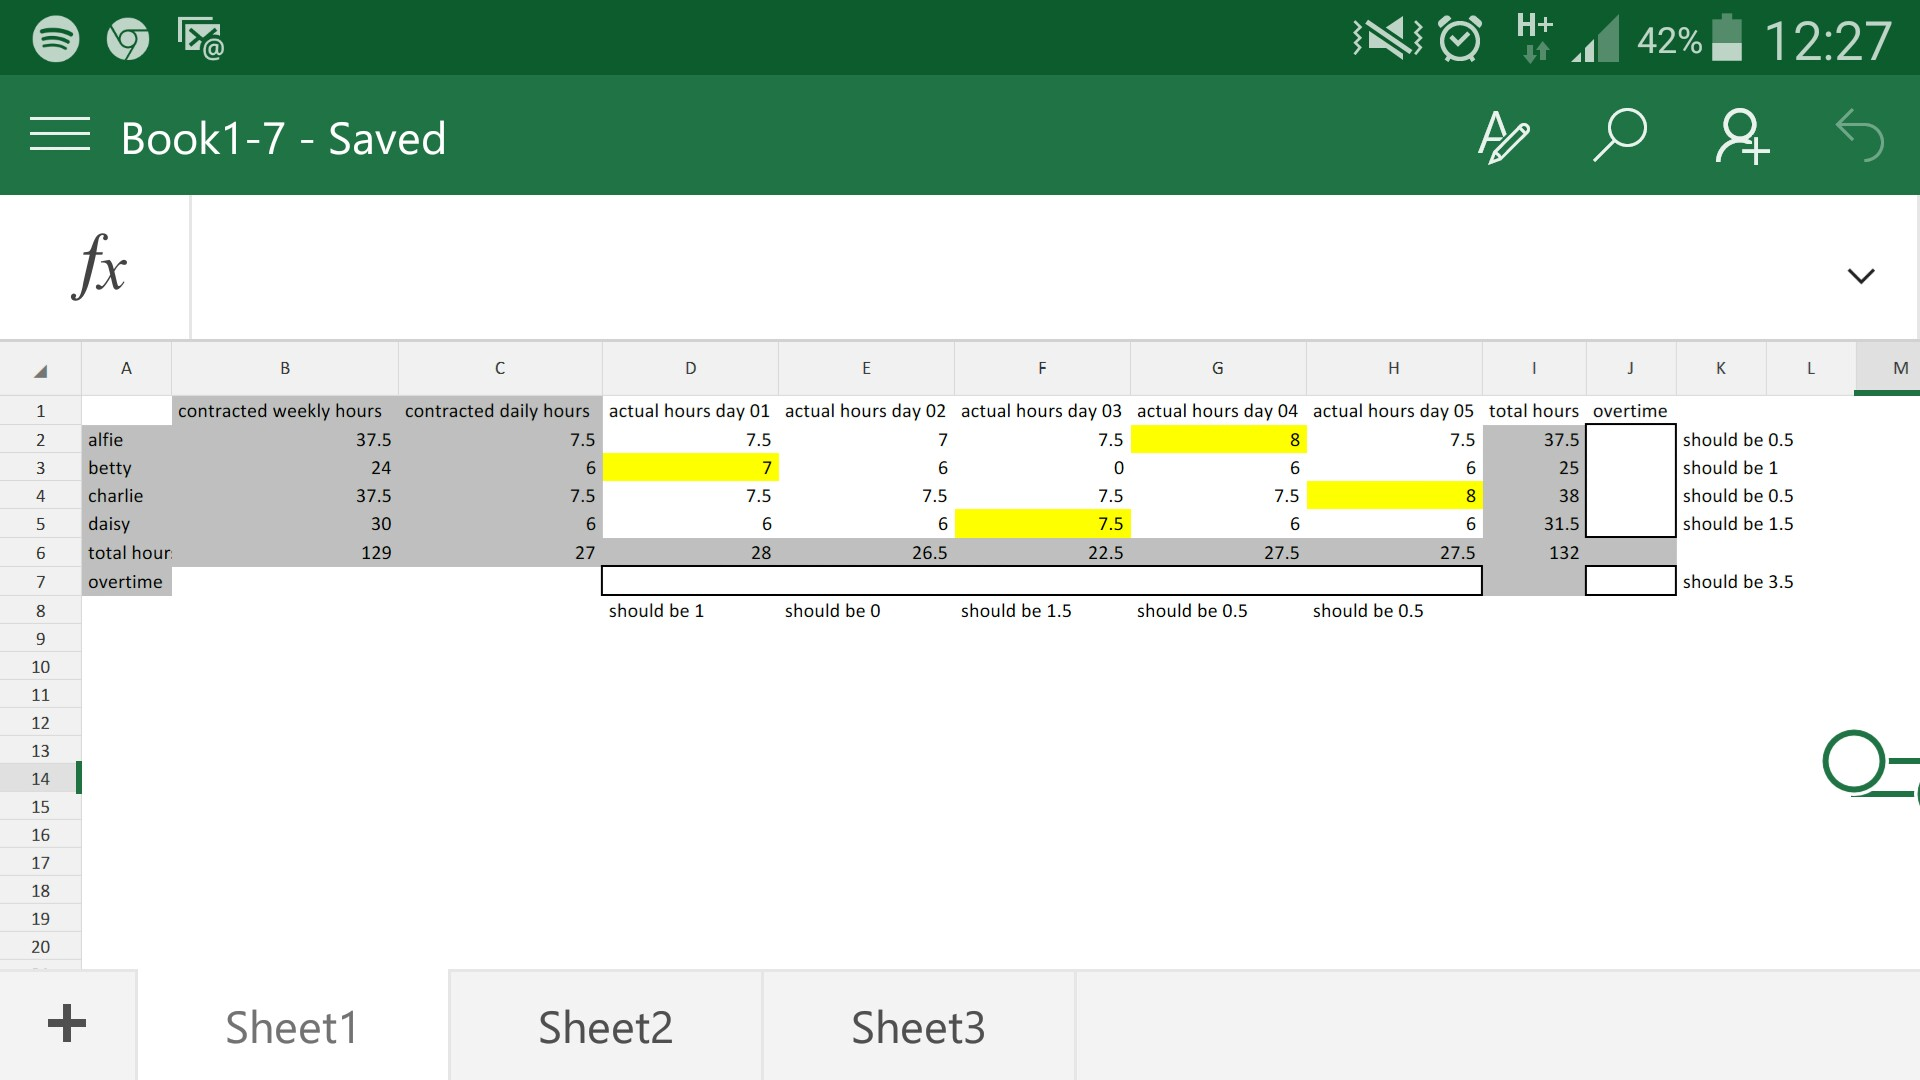 Excel Overtime Formula Based On Cell As Criteria